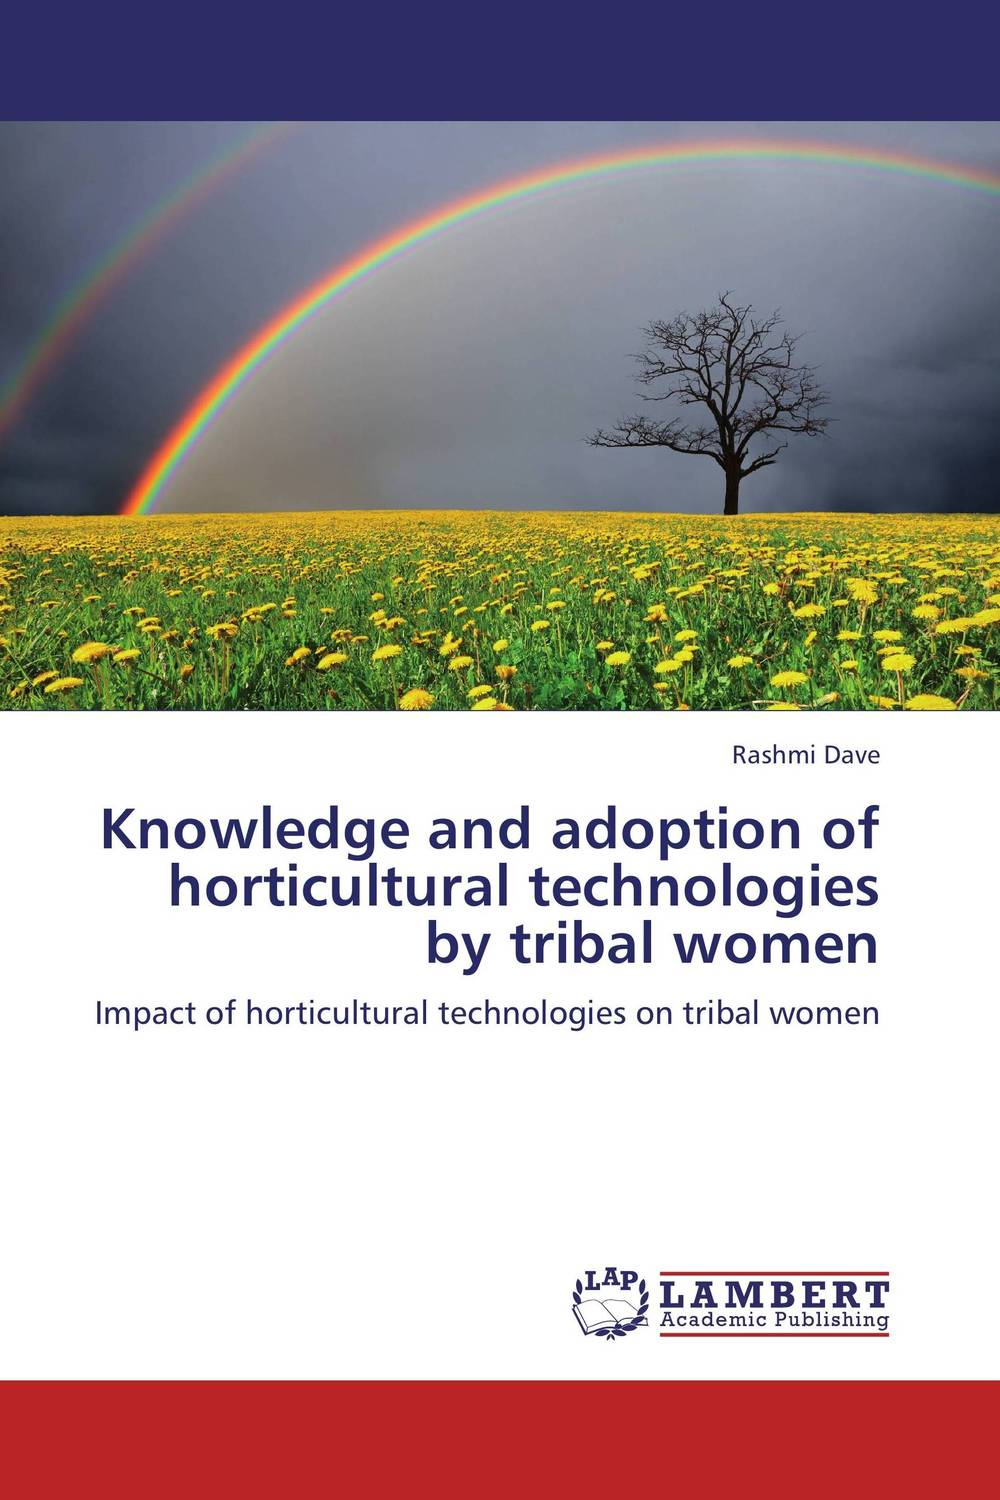 Knowledge and adoption of horticultural technologies by tribal women tribal malnutrition in india